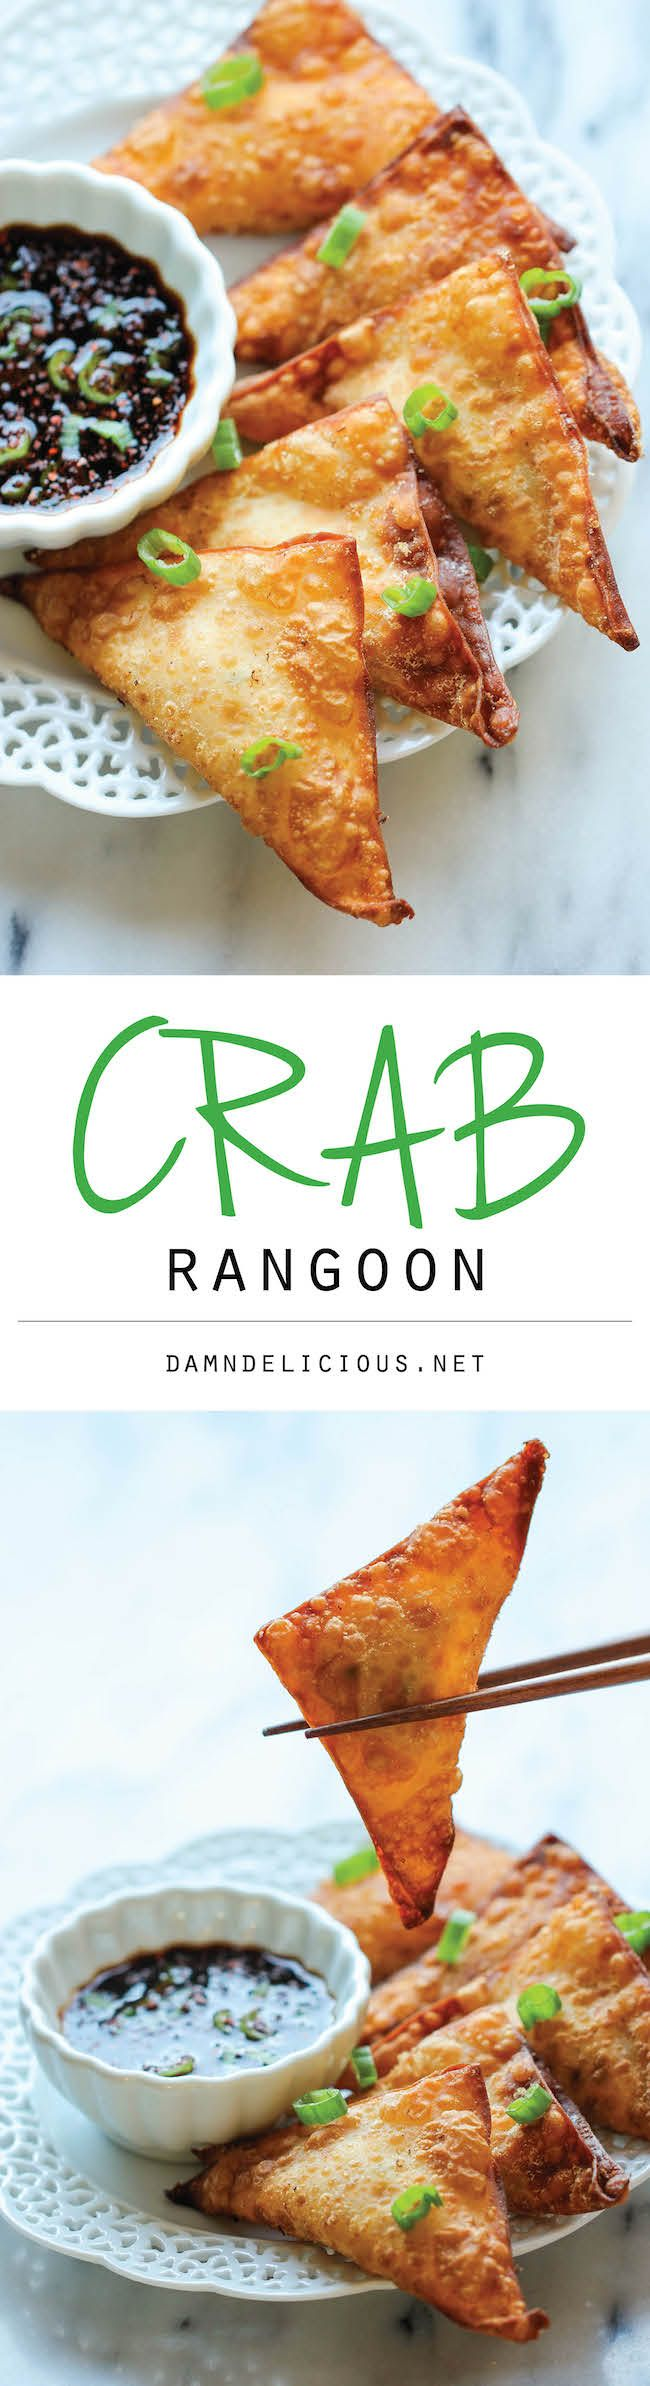 Crab Rangoon - This crisp, fried wonton is loaded with cream cheese and crab goodness, and it's an absolute party favorite!